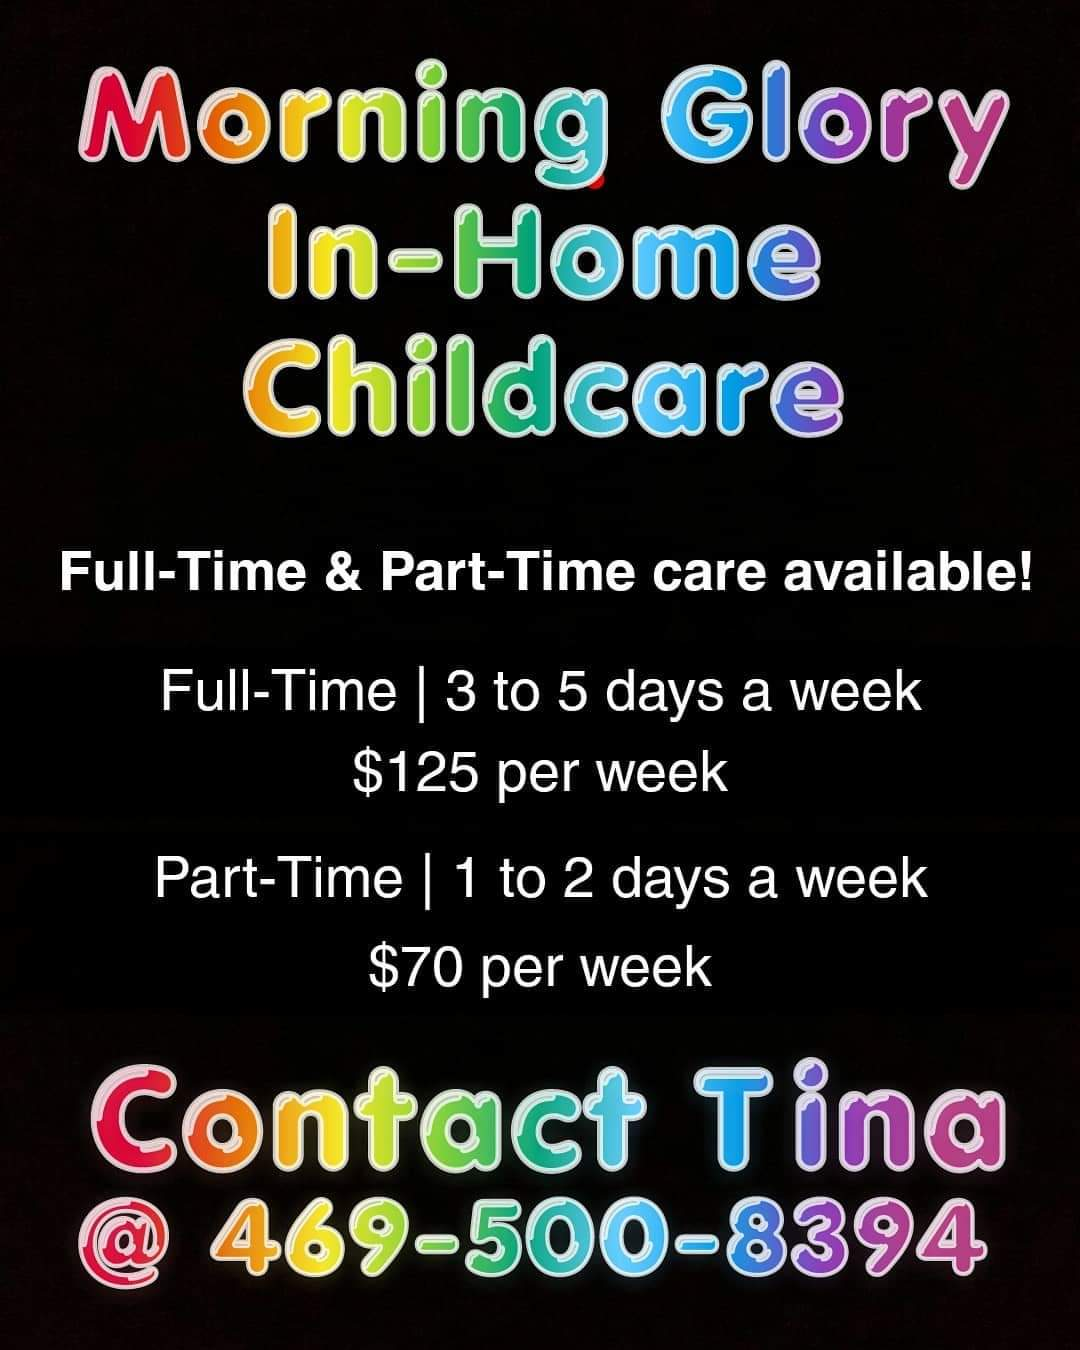 Morning Glory In-Home Childcare